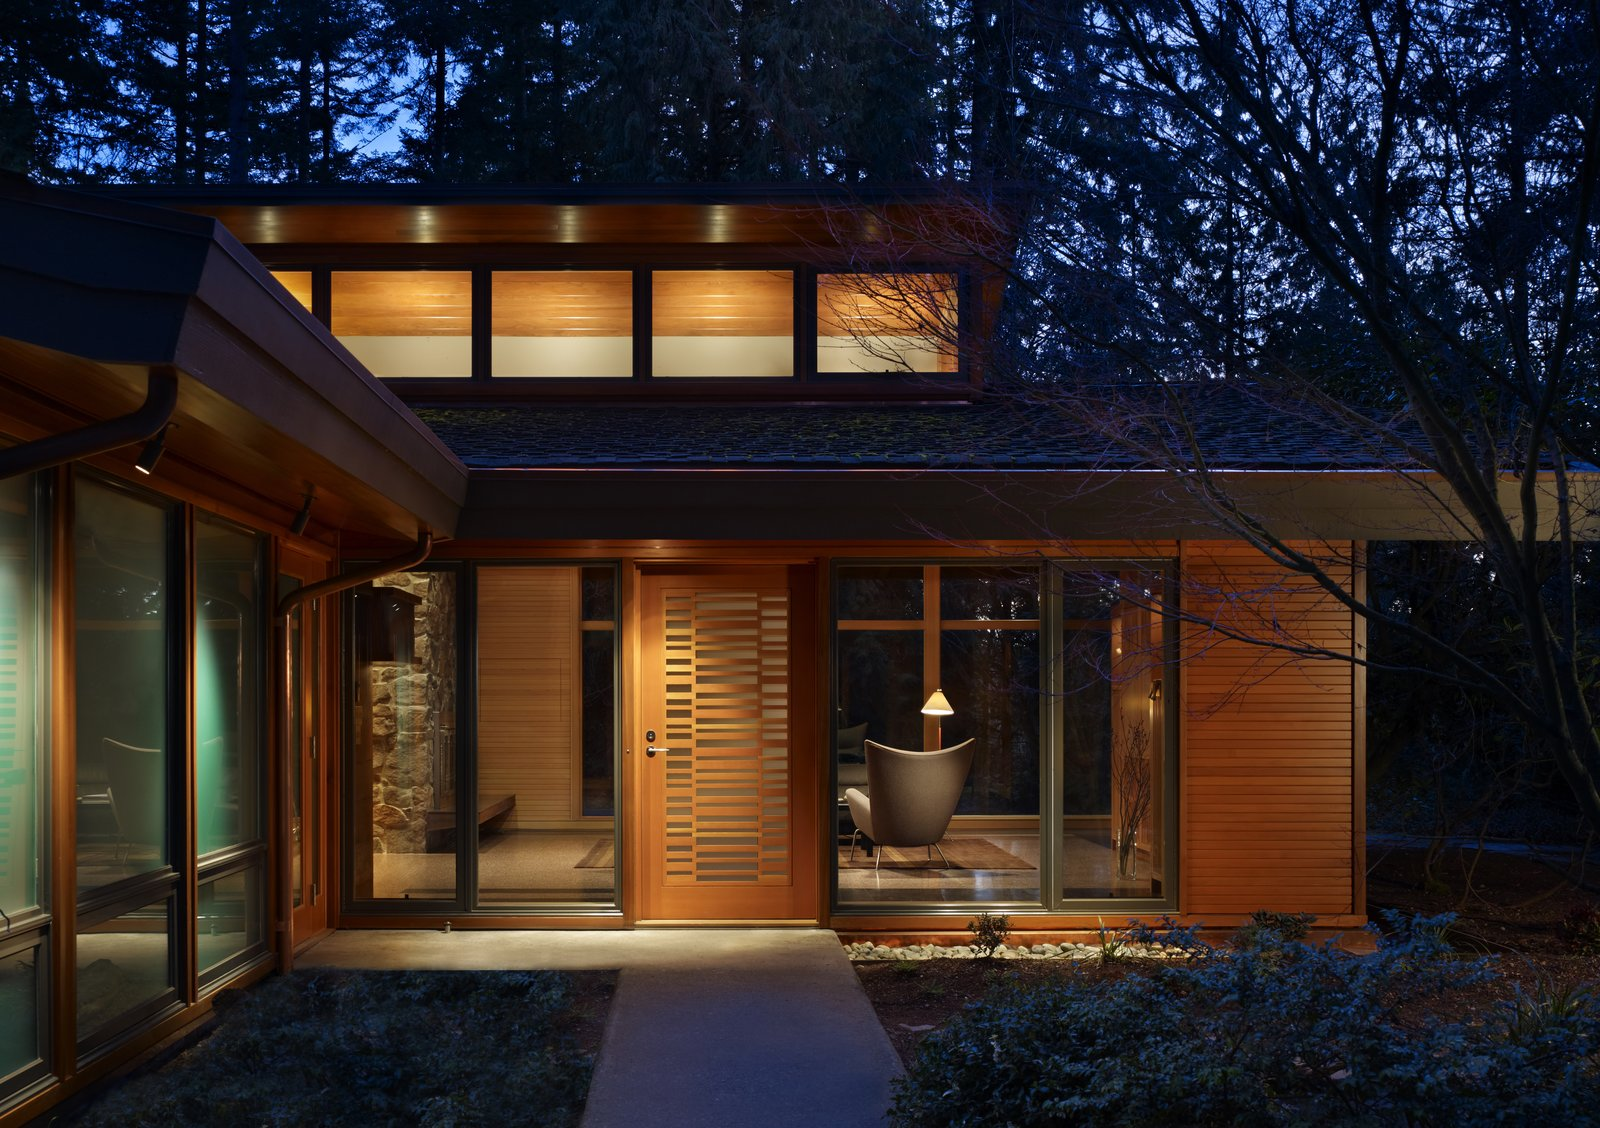 Exterior, House Building Type, Gable RoofLine, Wood Siding Material, and Shingles Roof Material Exterior view of main entry  Lake  Forest Park Mid Century Renovation by FINNE Architects